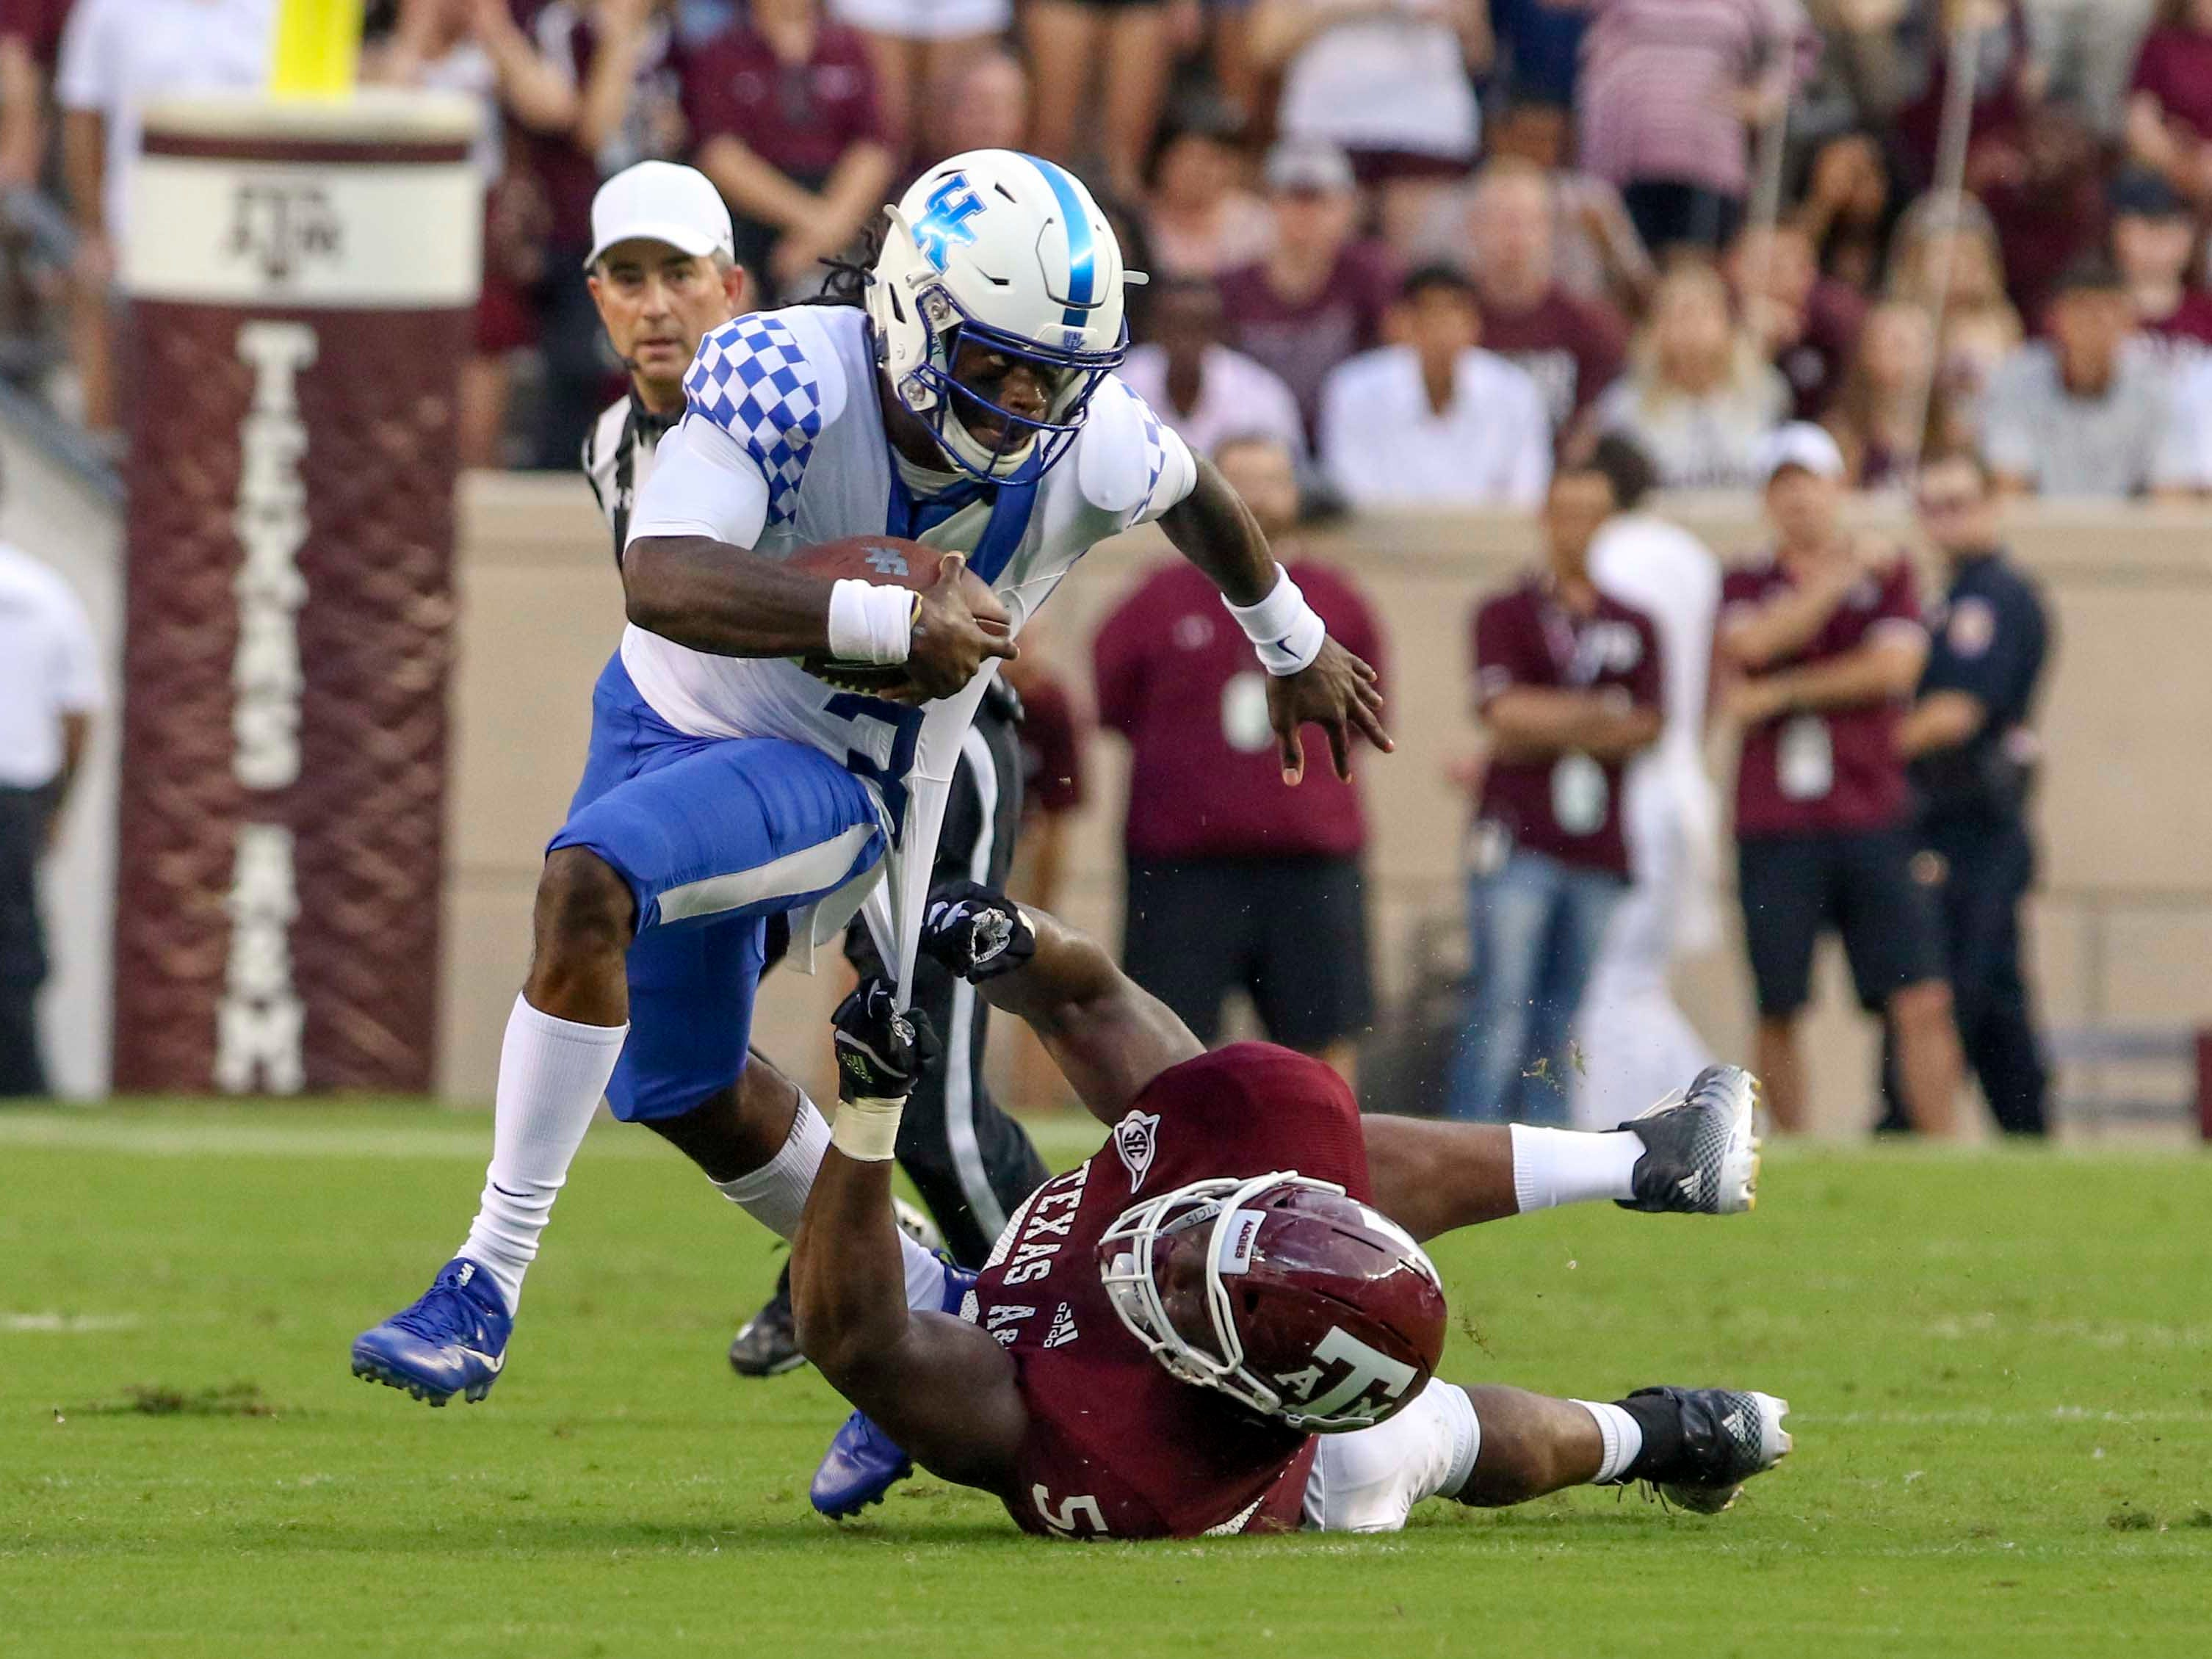 Oct 6, 2018; College Station, TX, USA; Texas A&M Aggies defensive lineman Justin Madubuike (52) grabs on to Kentucky Wildcats quarterback Terry Wilson (3) during the first quarter at Kyle Field.